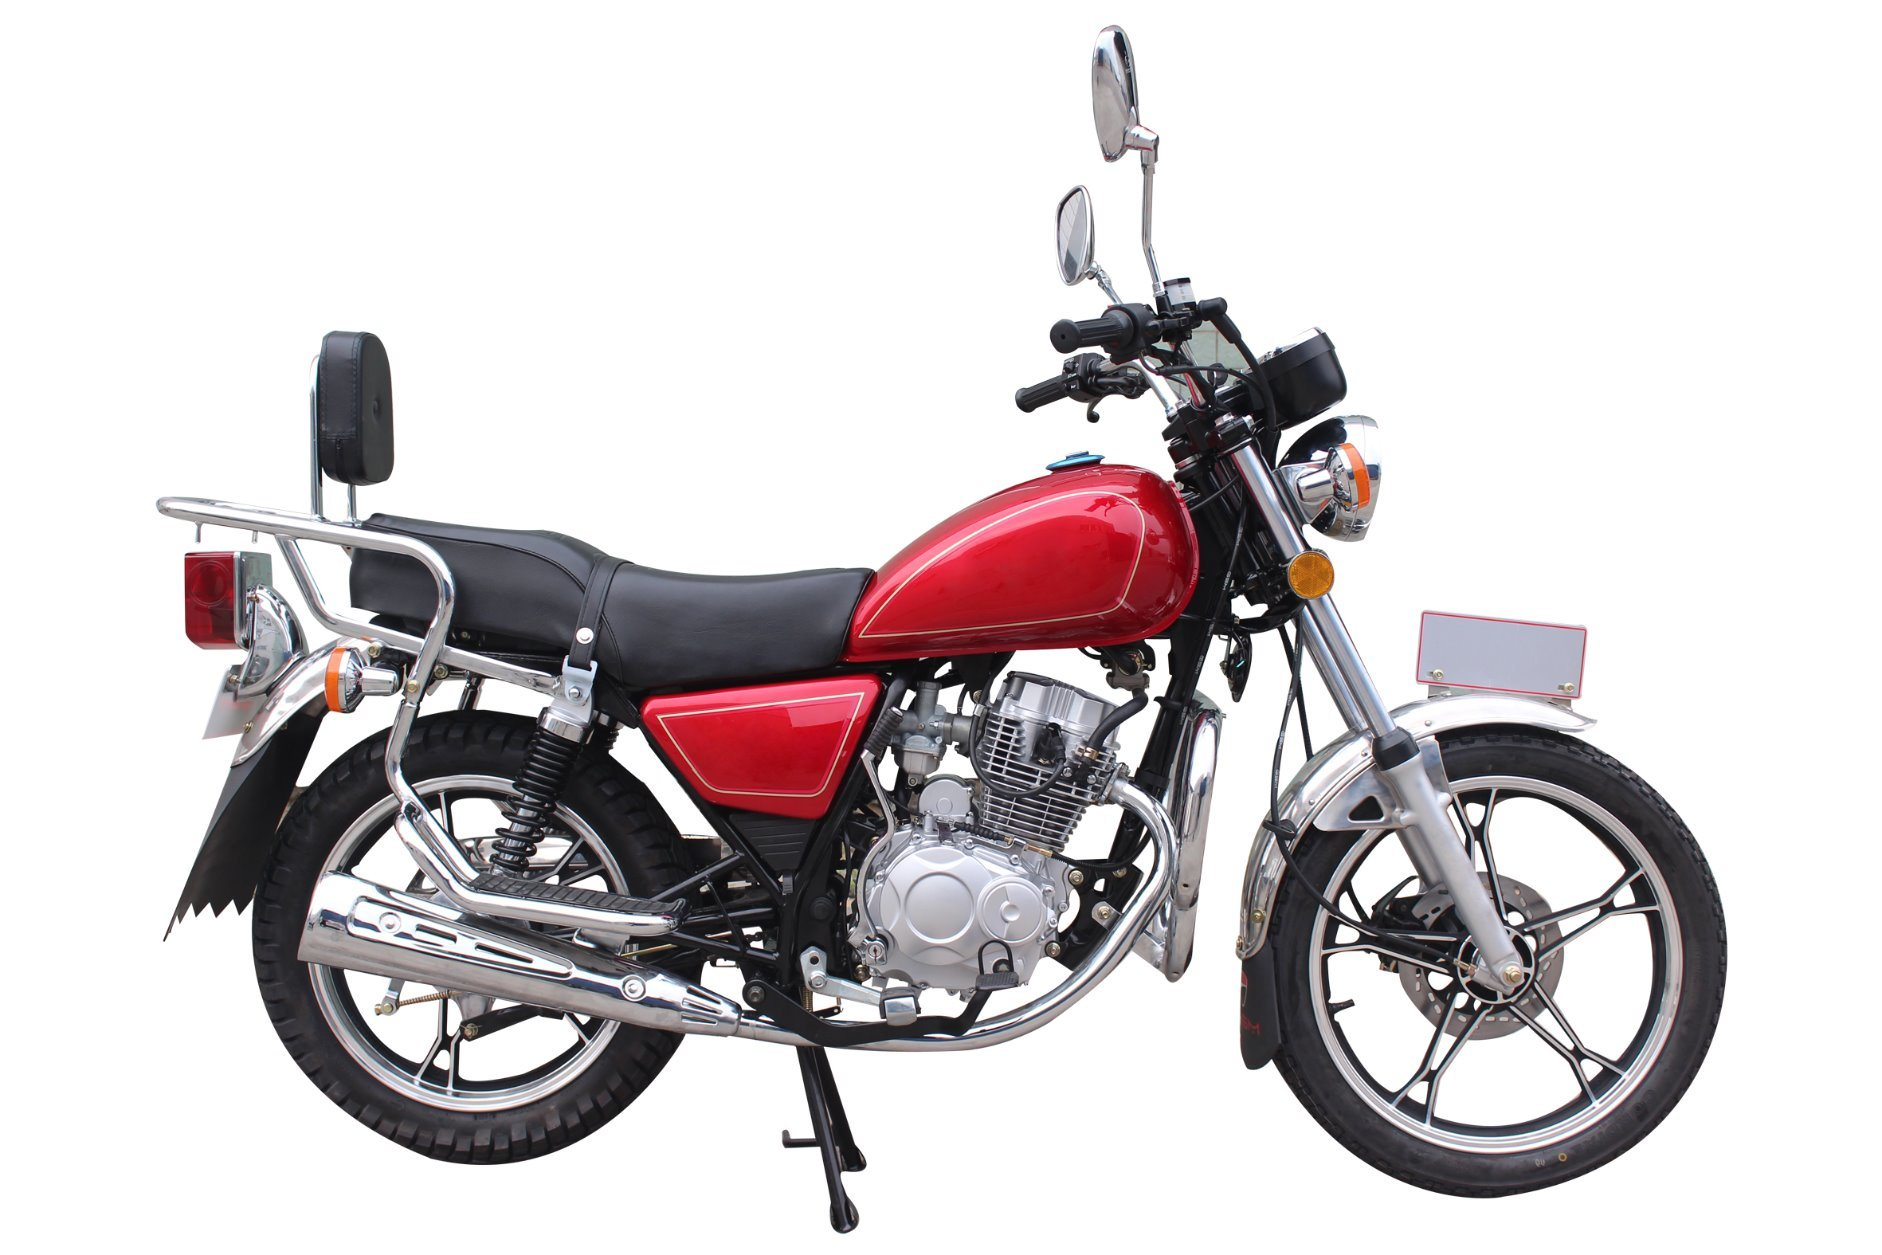 150cc Gn Motorcycle for Hot Sell Very Popular